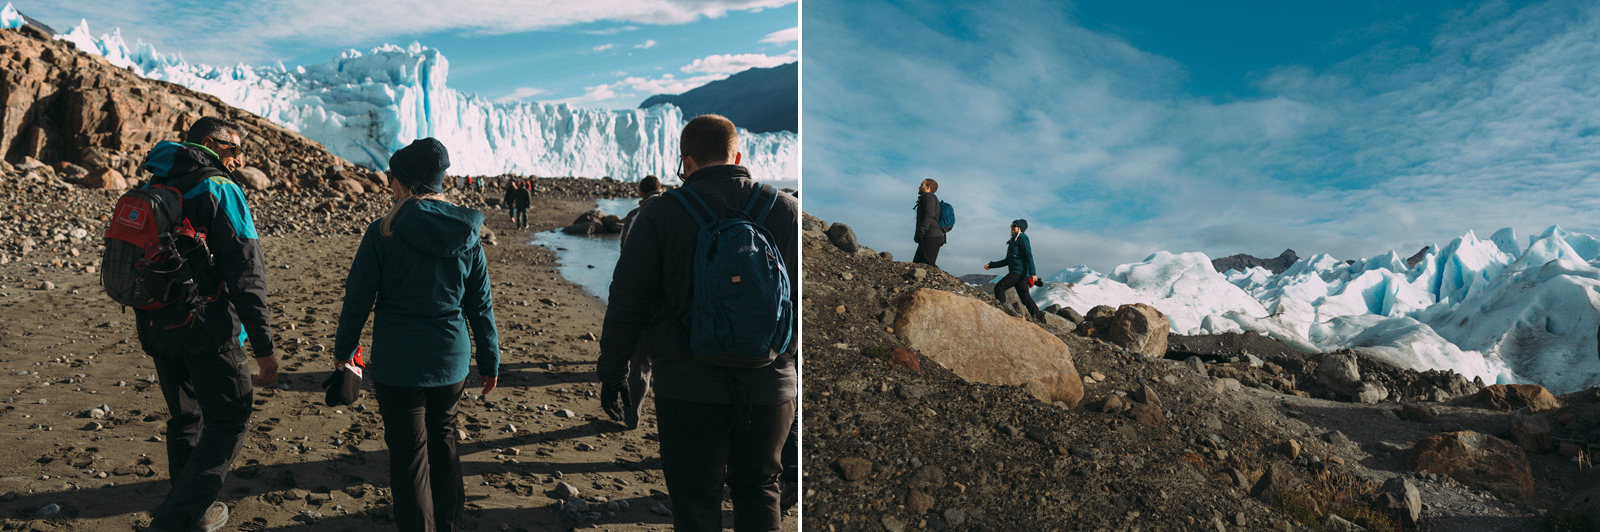 Patagonia-engagement-photography-in-El-Chalten-Argentina-by-lifestyle-photographer-Sam-Wong-of-Artanis-Collective_112.jpg